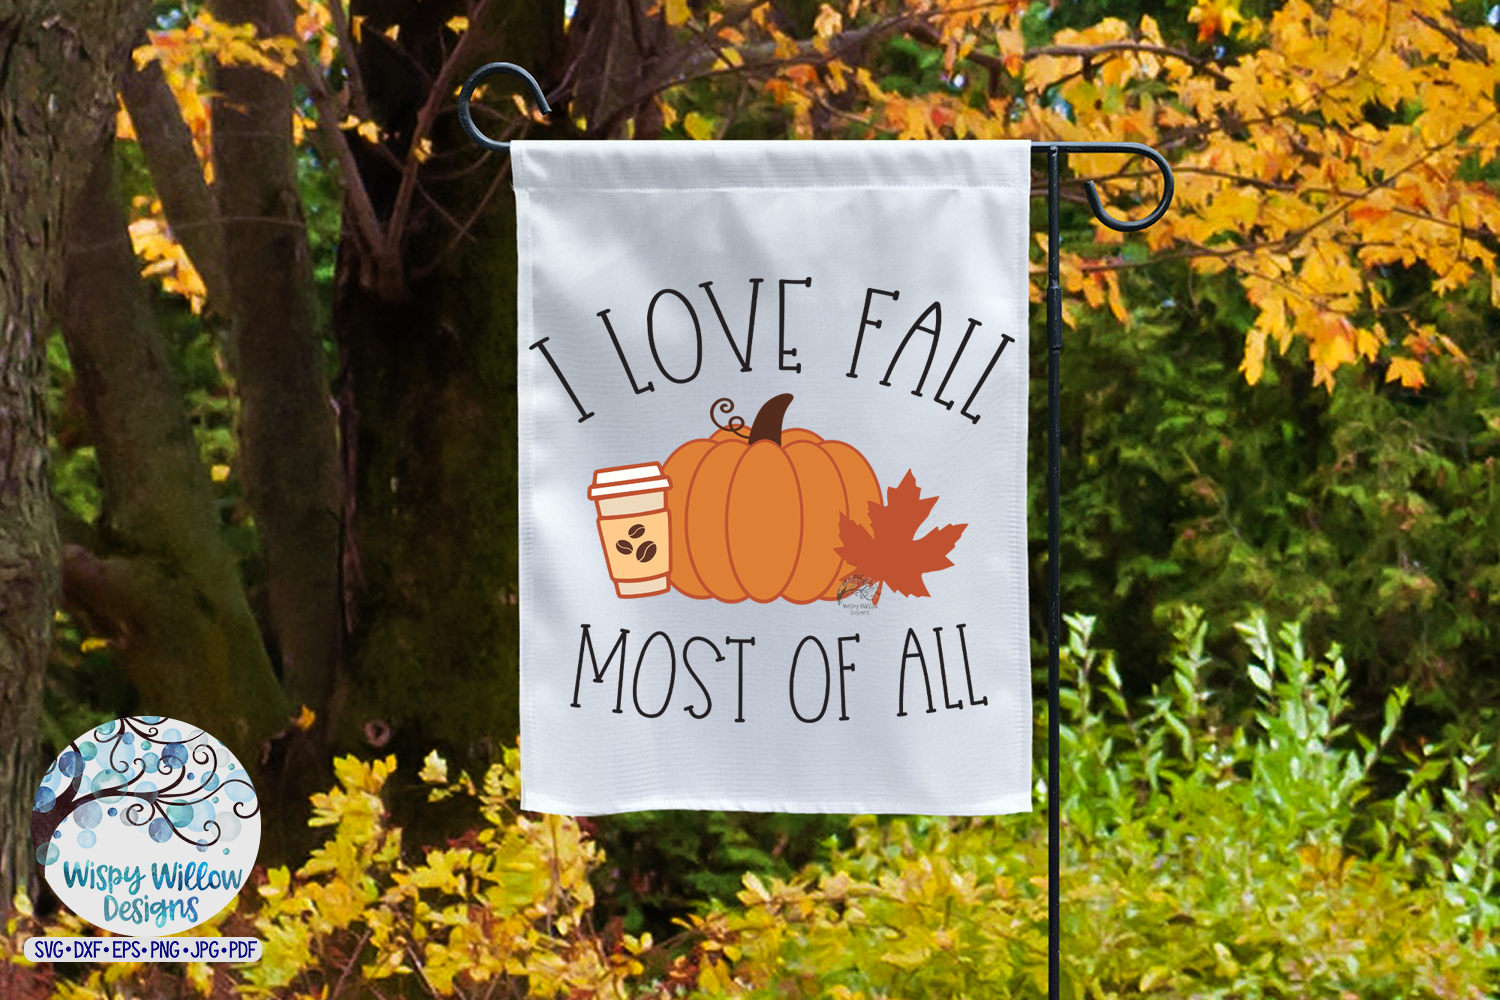 I Love Fall Most of All SVG | Fall Pumpkin SVG Cut File example image 3